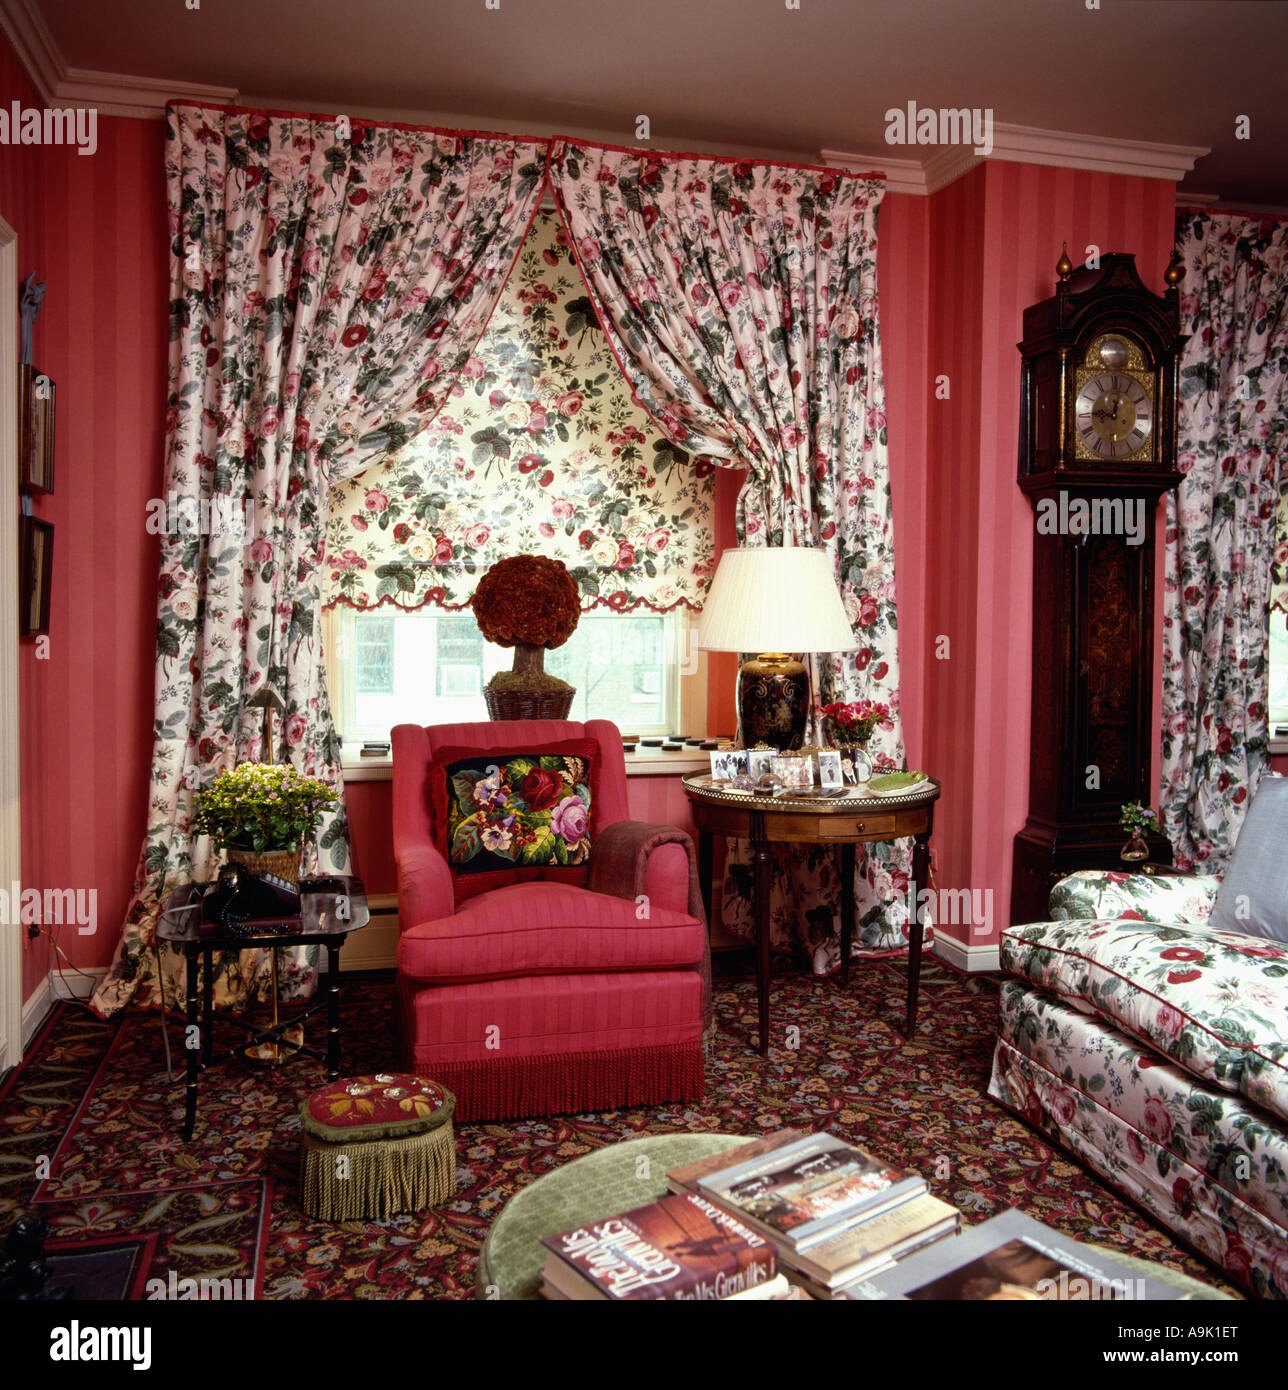 Floral Patterned Curtains And Blind In Red Eighties Livingroom With Red  Armchair And Floral Sofa